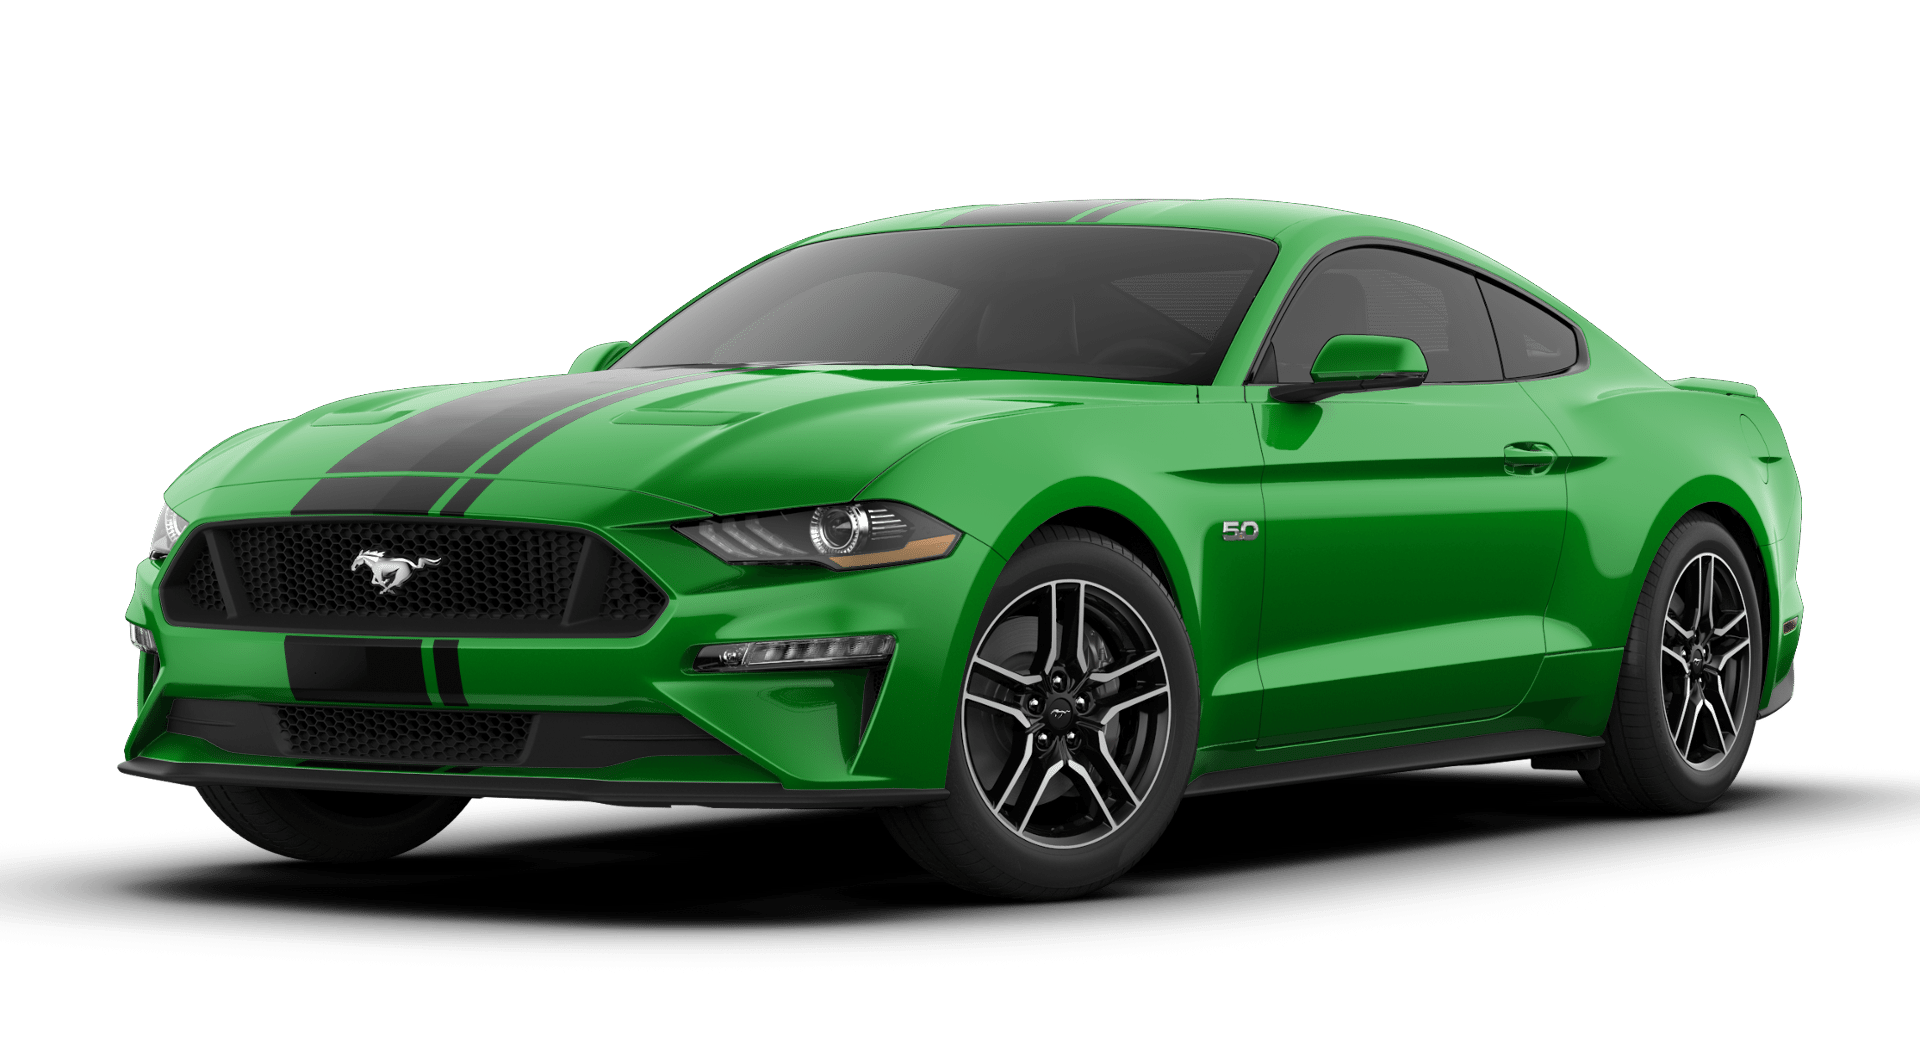 Rapid red, introduced on the 2020 mustang, is very similar to ruby red that lasted quite a few years on the mustang platform between the s197. Mustang Gt Premium Fastback Colors Winsome Car Color For Mustang 2020